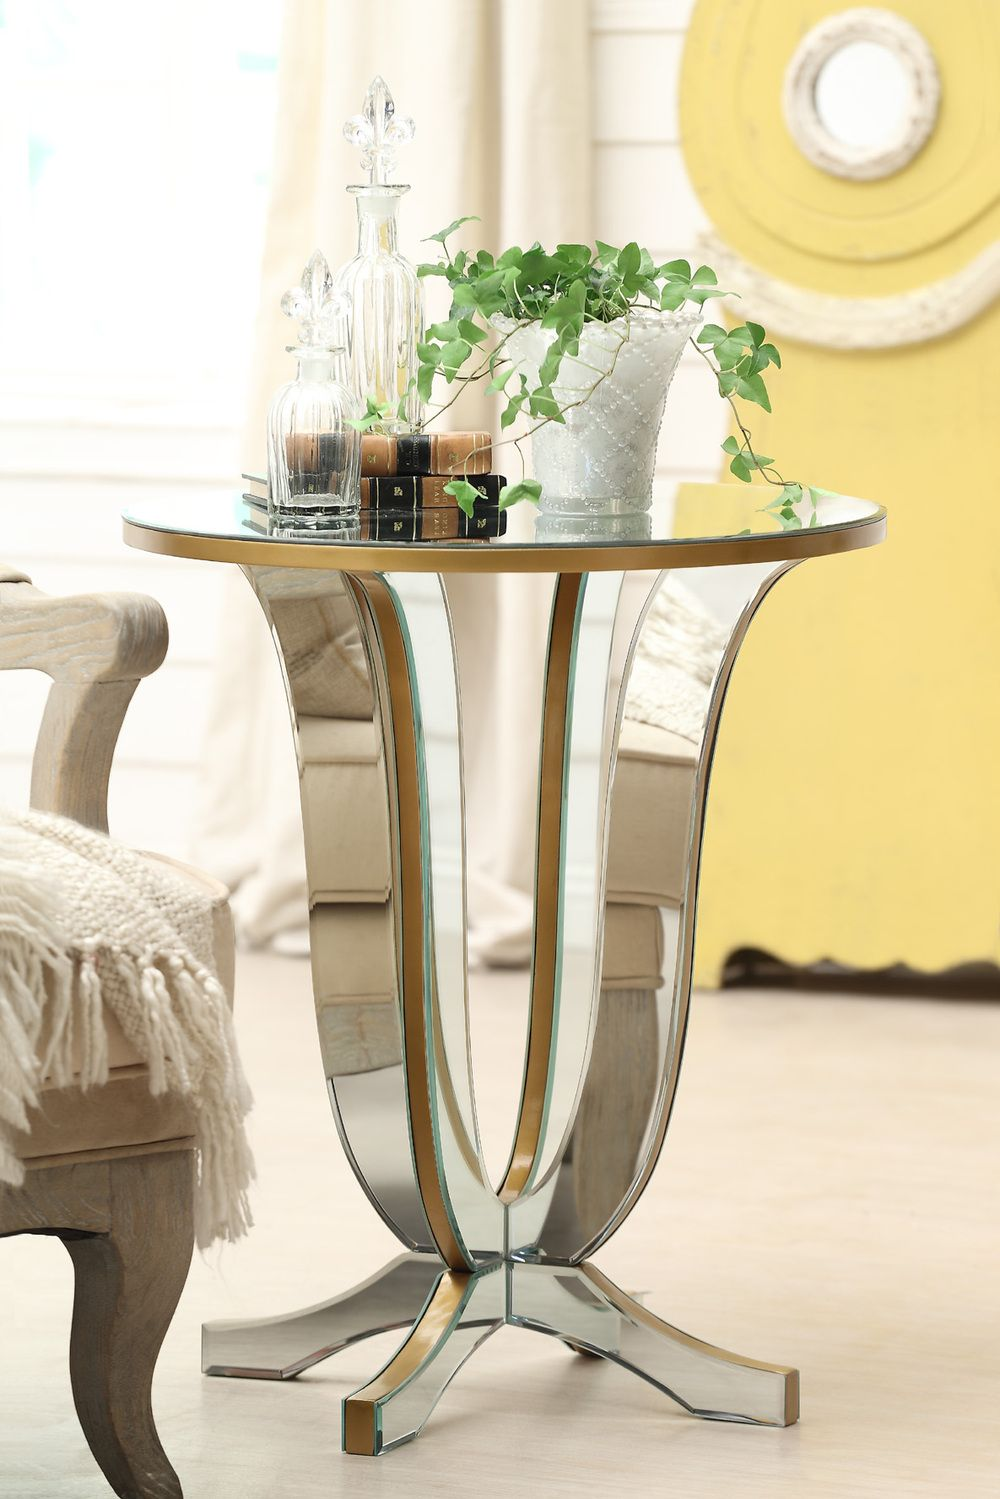 Attirant Attractive Mirrored Furniture Round Subtract And Curve Leg Constructions  Perfect For Lounge Area Elegant Mirror Furniture Ideas Mirrored Furniture  For Less. ...